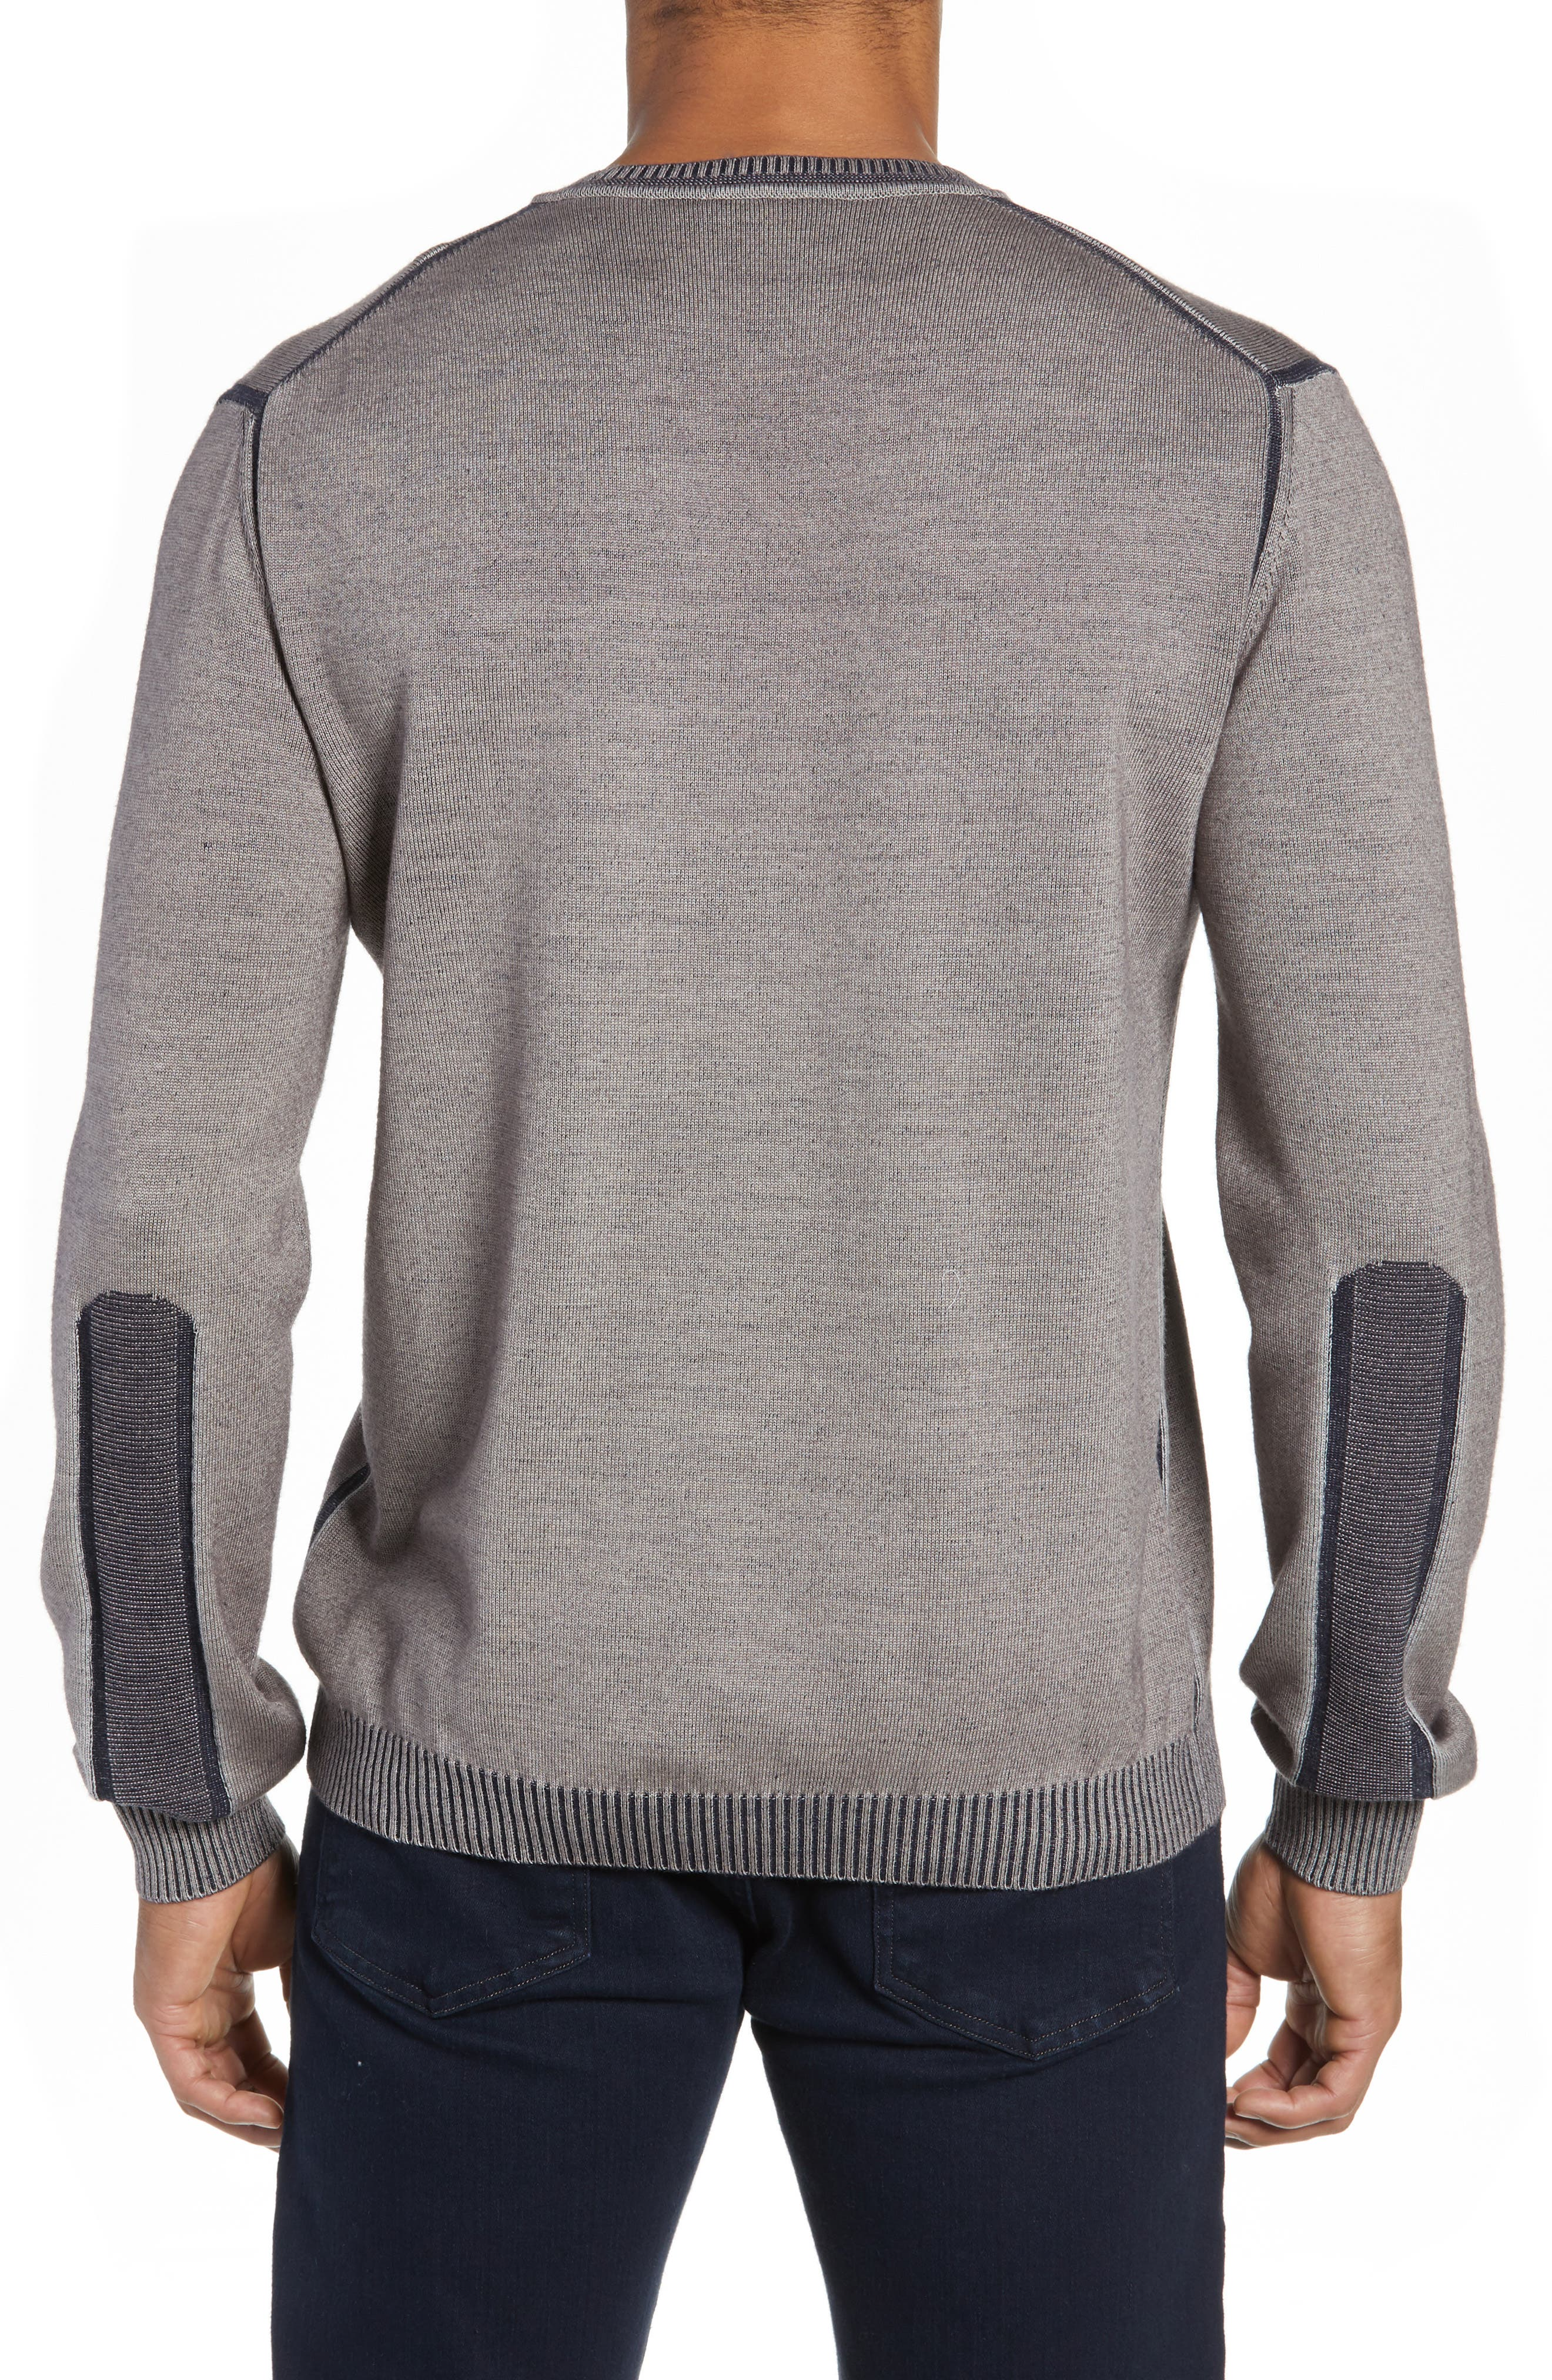 Wool Blend Sweater,                             Alternate thumbnail 2, color,                             TAUPE